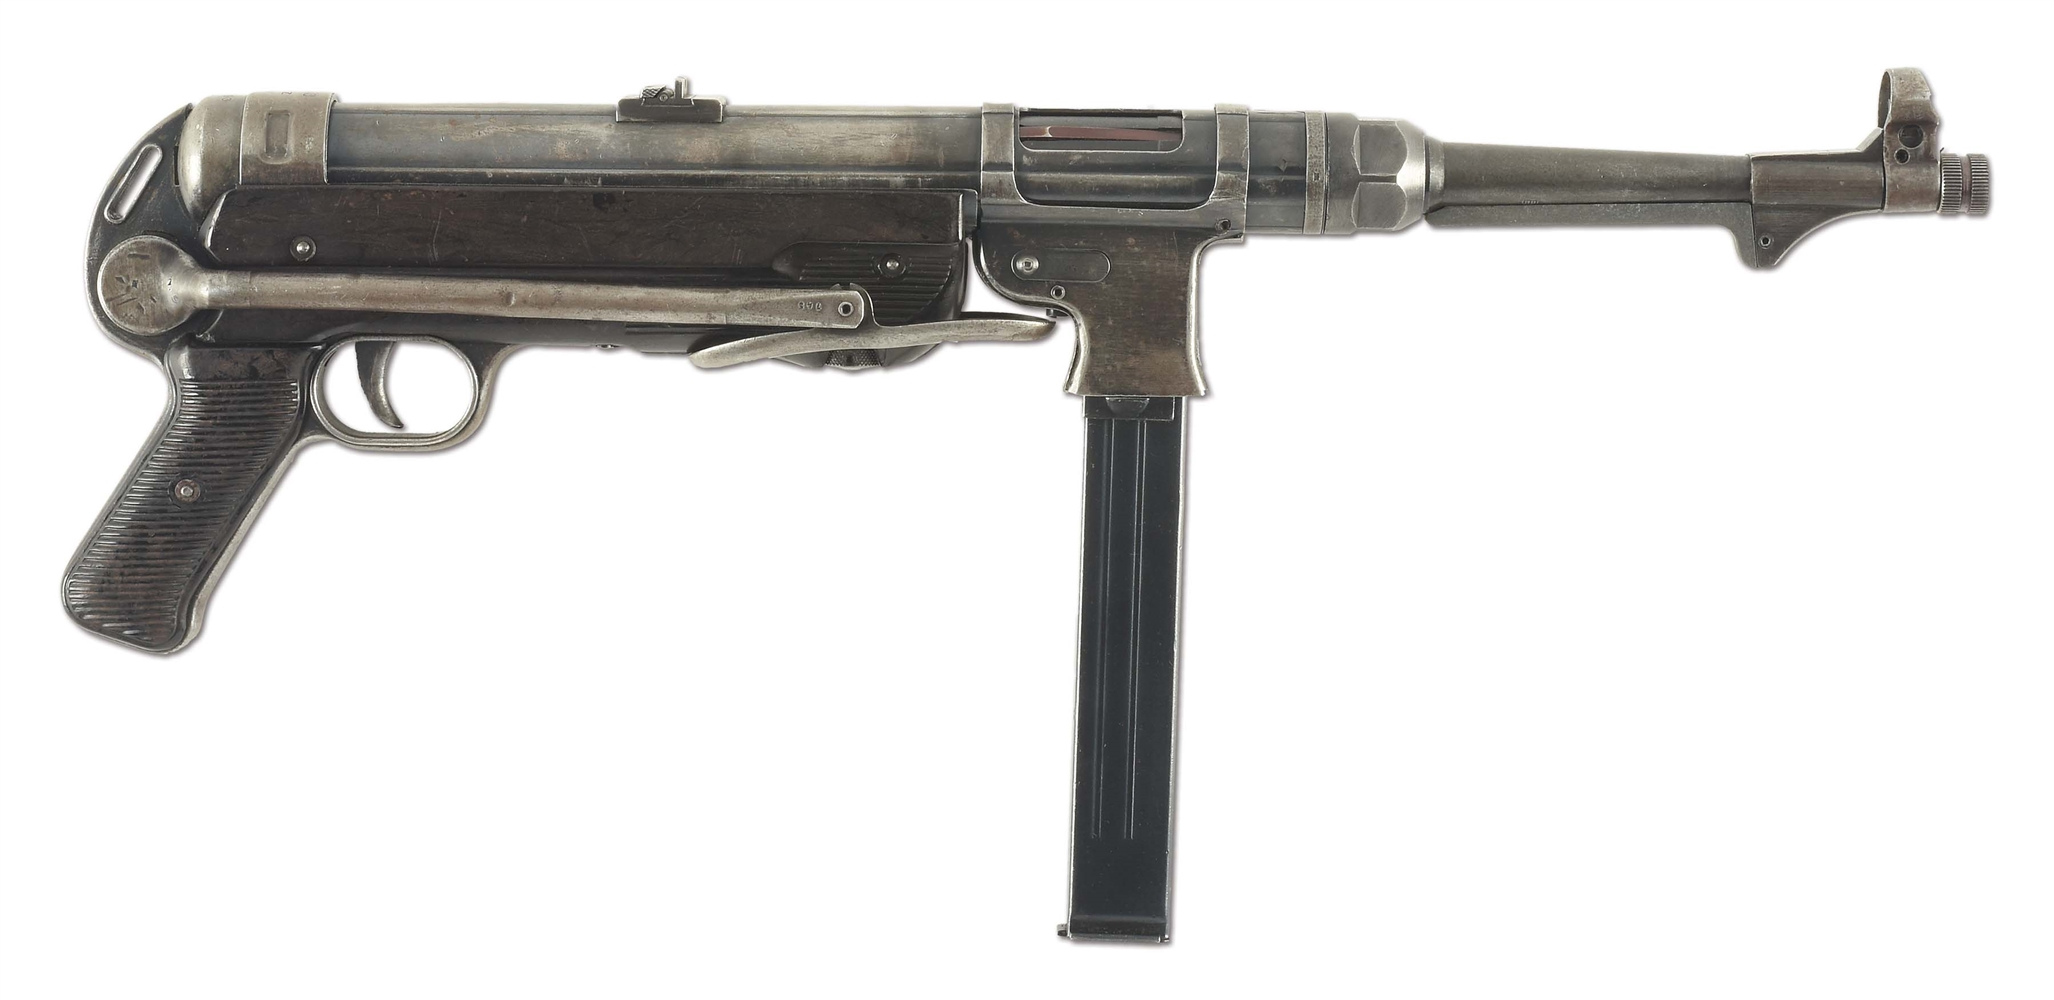 (N) ICONIC ORIGINAL TRANSITIONAL FLAT MAG HOUSING GERMAN MP-40 MACHINE GUN (CURIO AND RELIC).